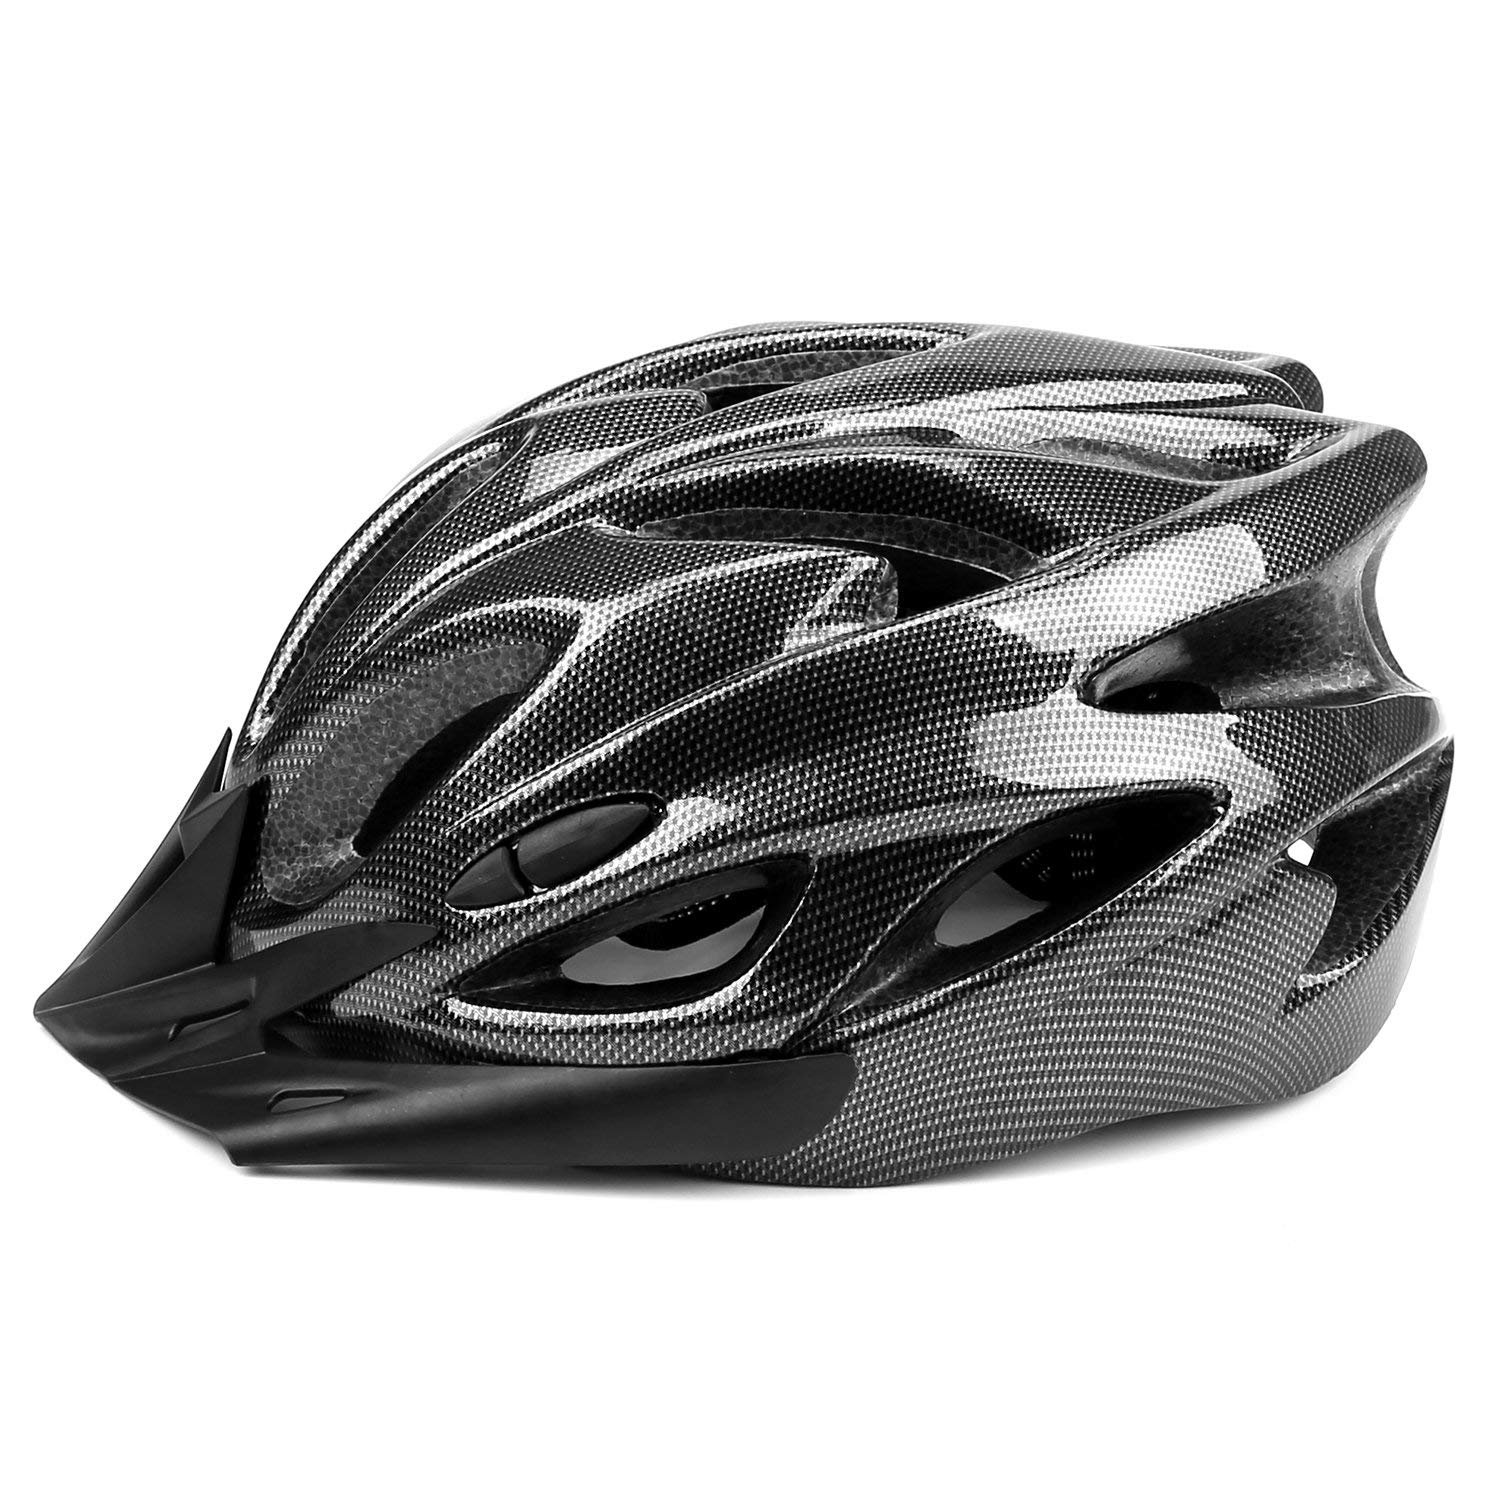 Q-Yuan Lightweight Bike Helmet, CPSC Certified Cycle Helmet Adjustable Thrasher for Adult with Detachable Liner with Water and Dust Resistant Cover